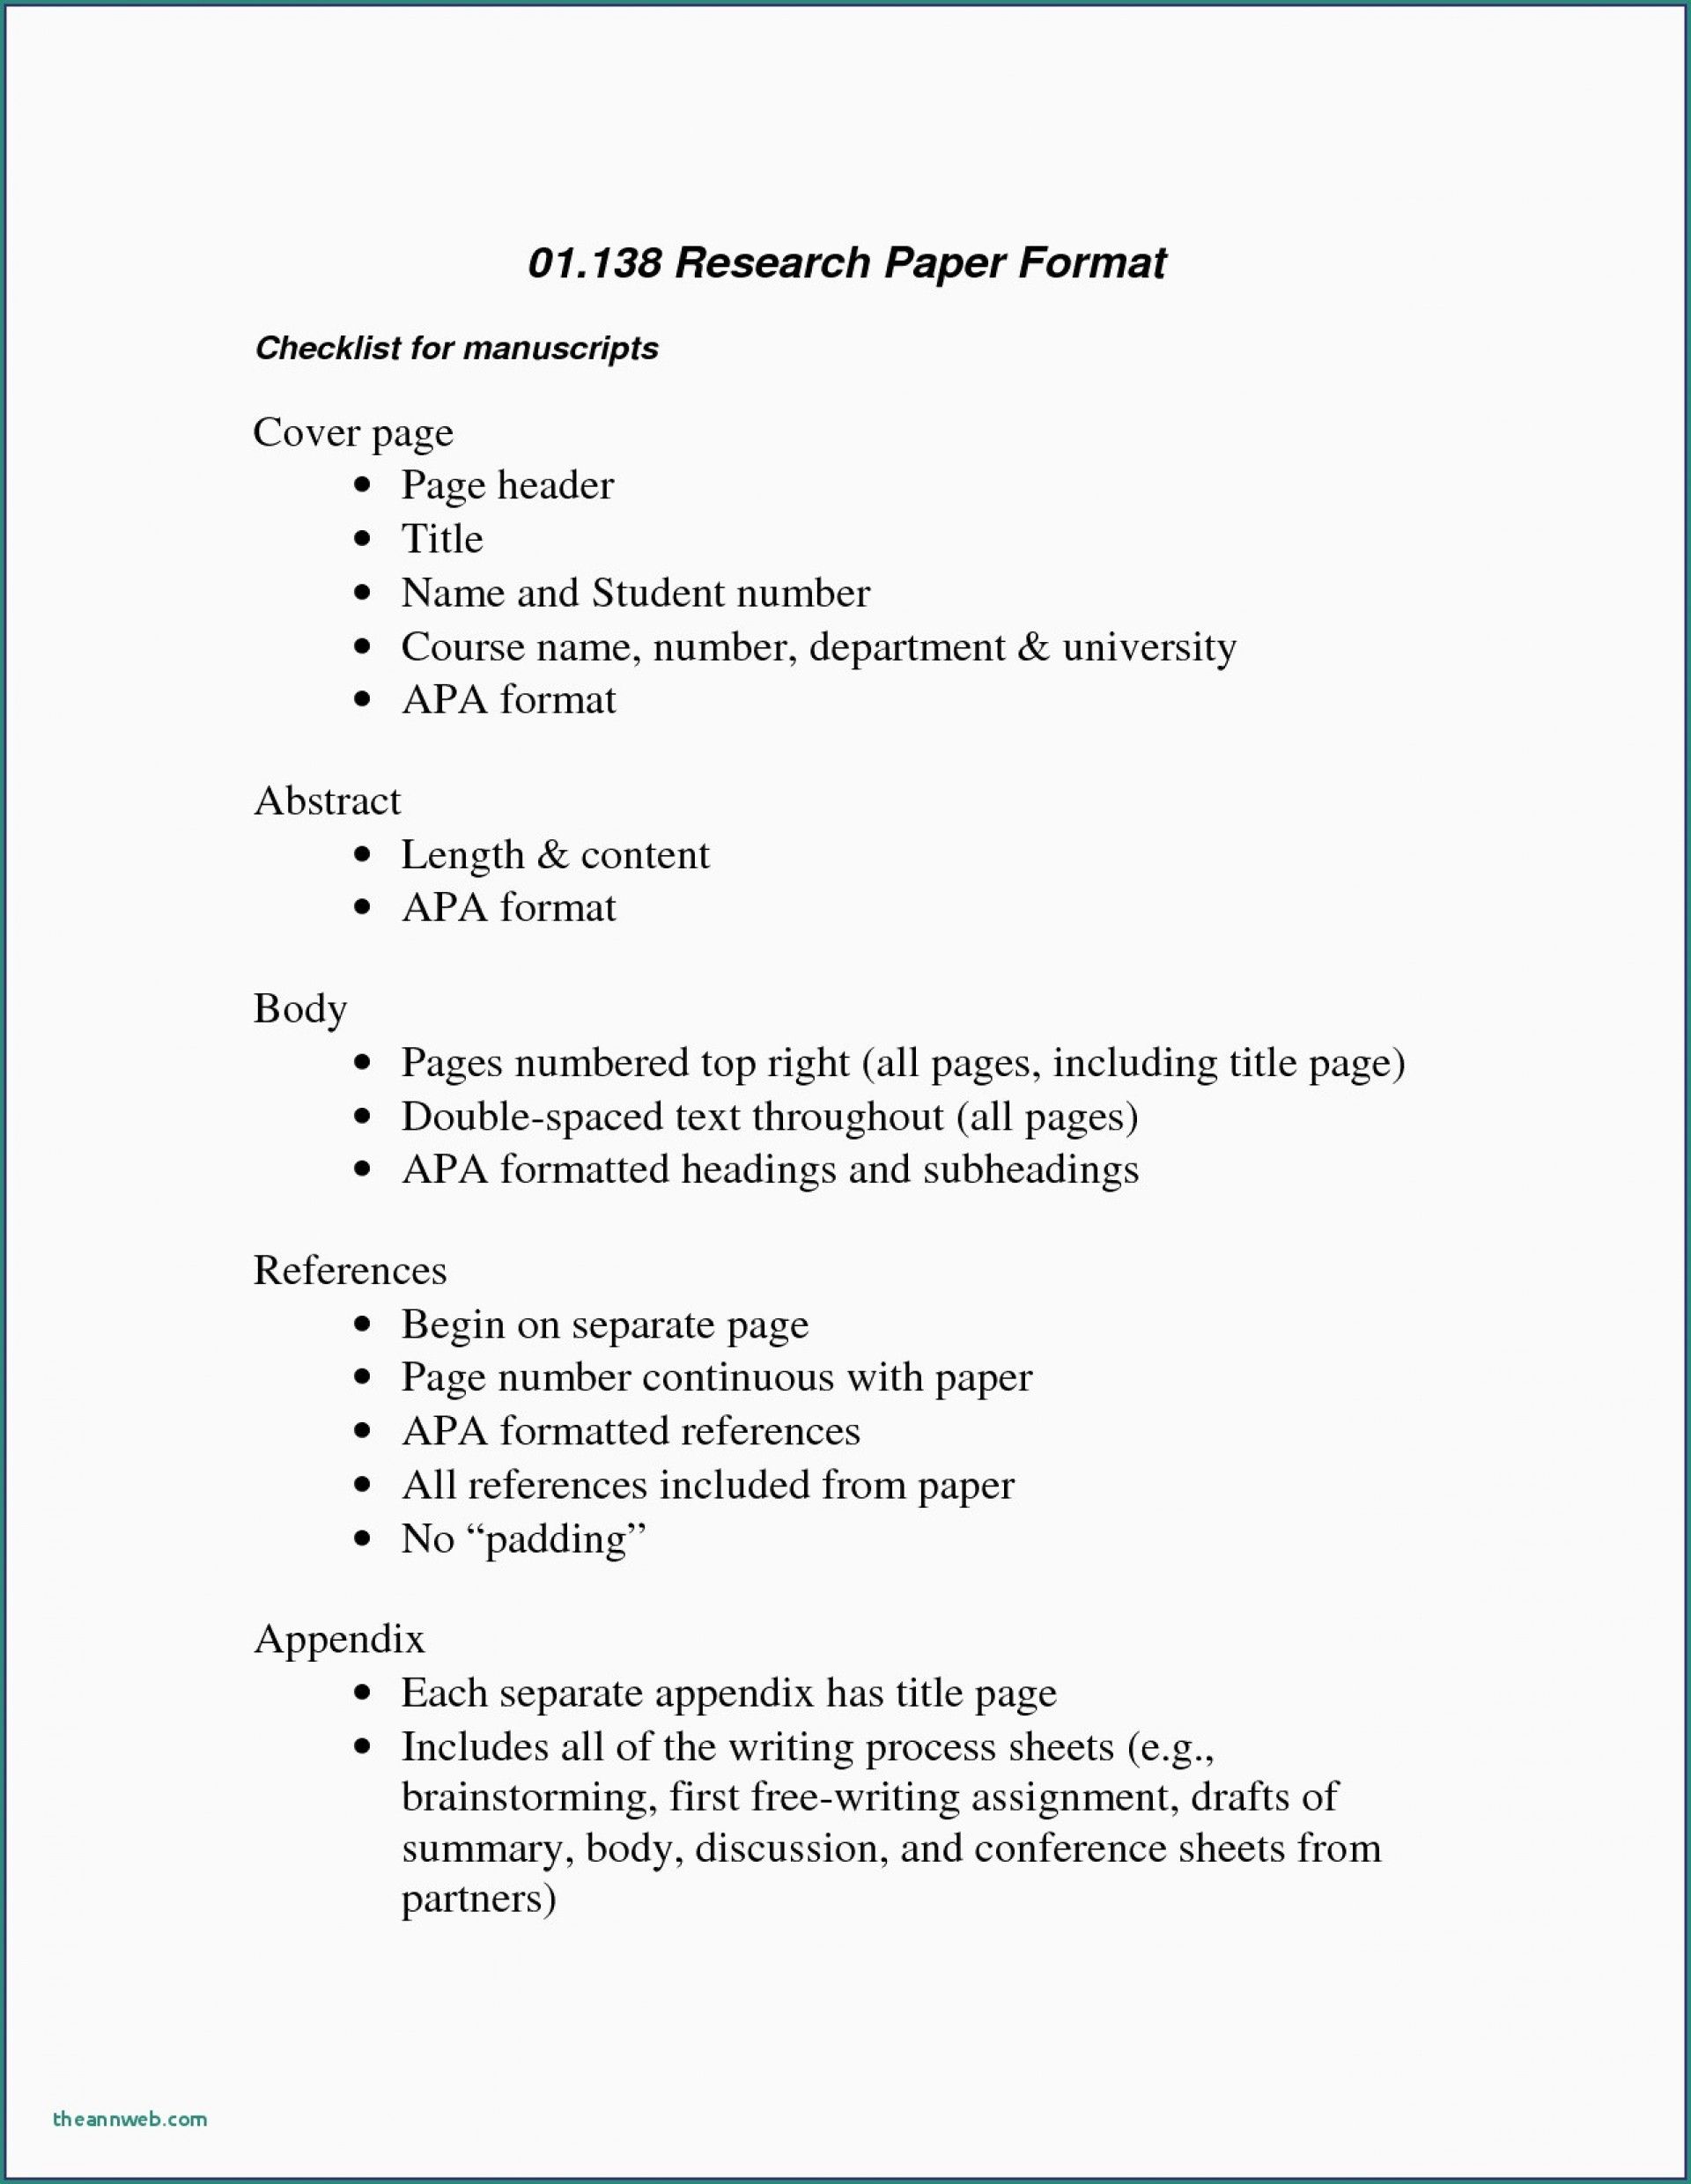 023 Apa Format Research Paper Sample Psychology Elegant Essay New Template Resume Fascinating Example 6th Edition 2012 1920